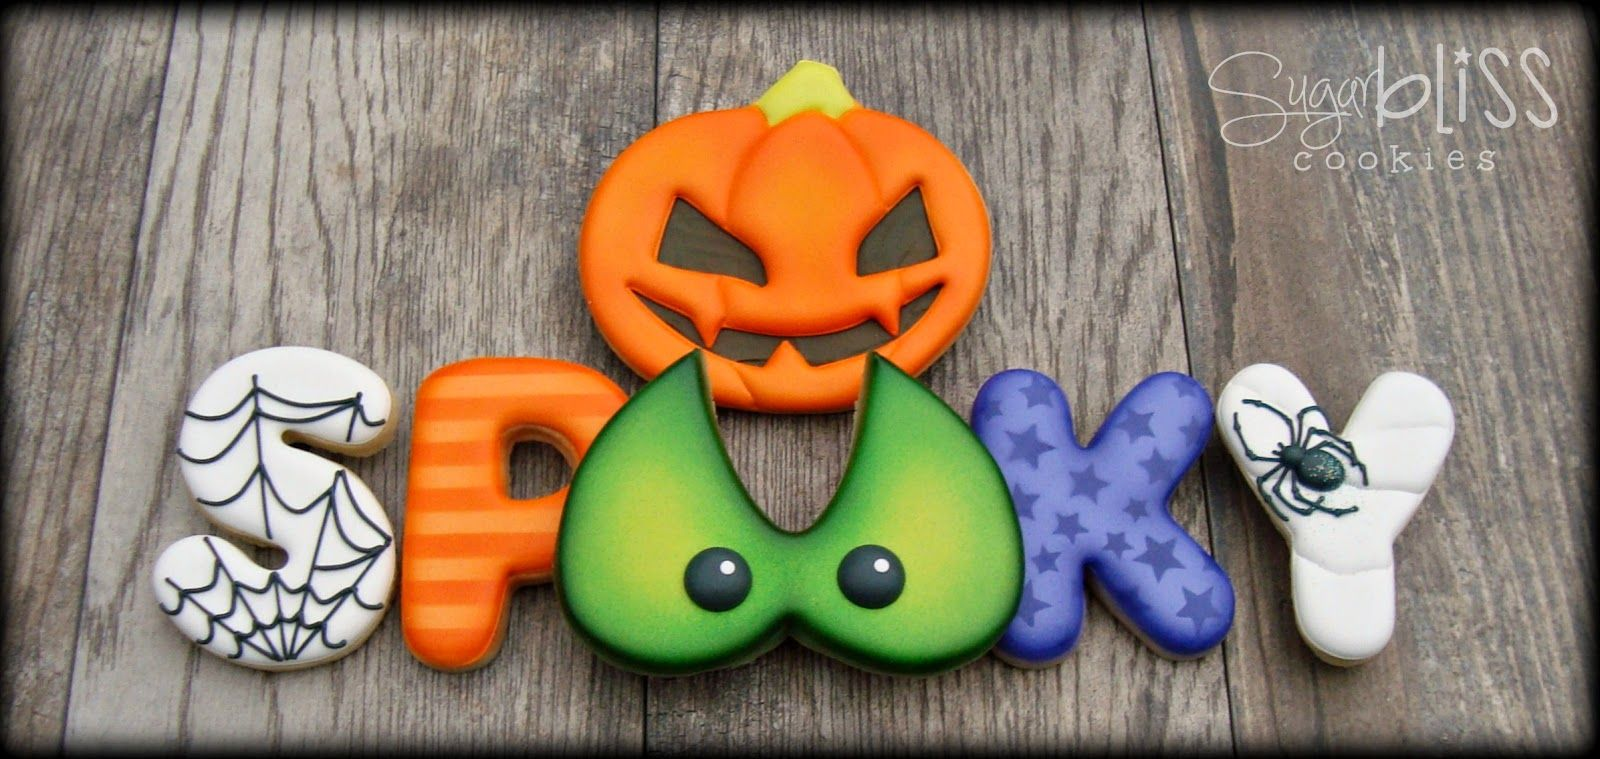 SugarBliss Cookies SugarBliss Spooky Decorated cookies - Halloween Decorated Cookies